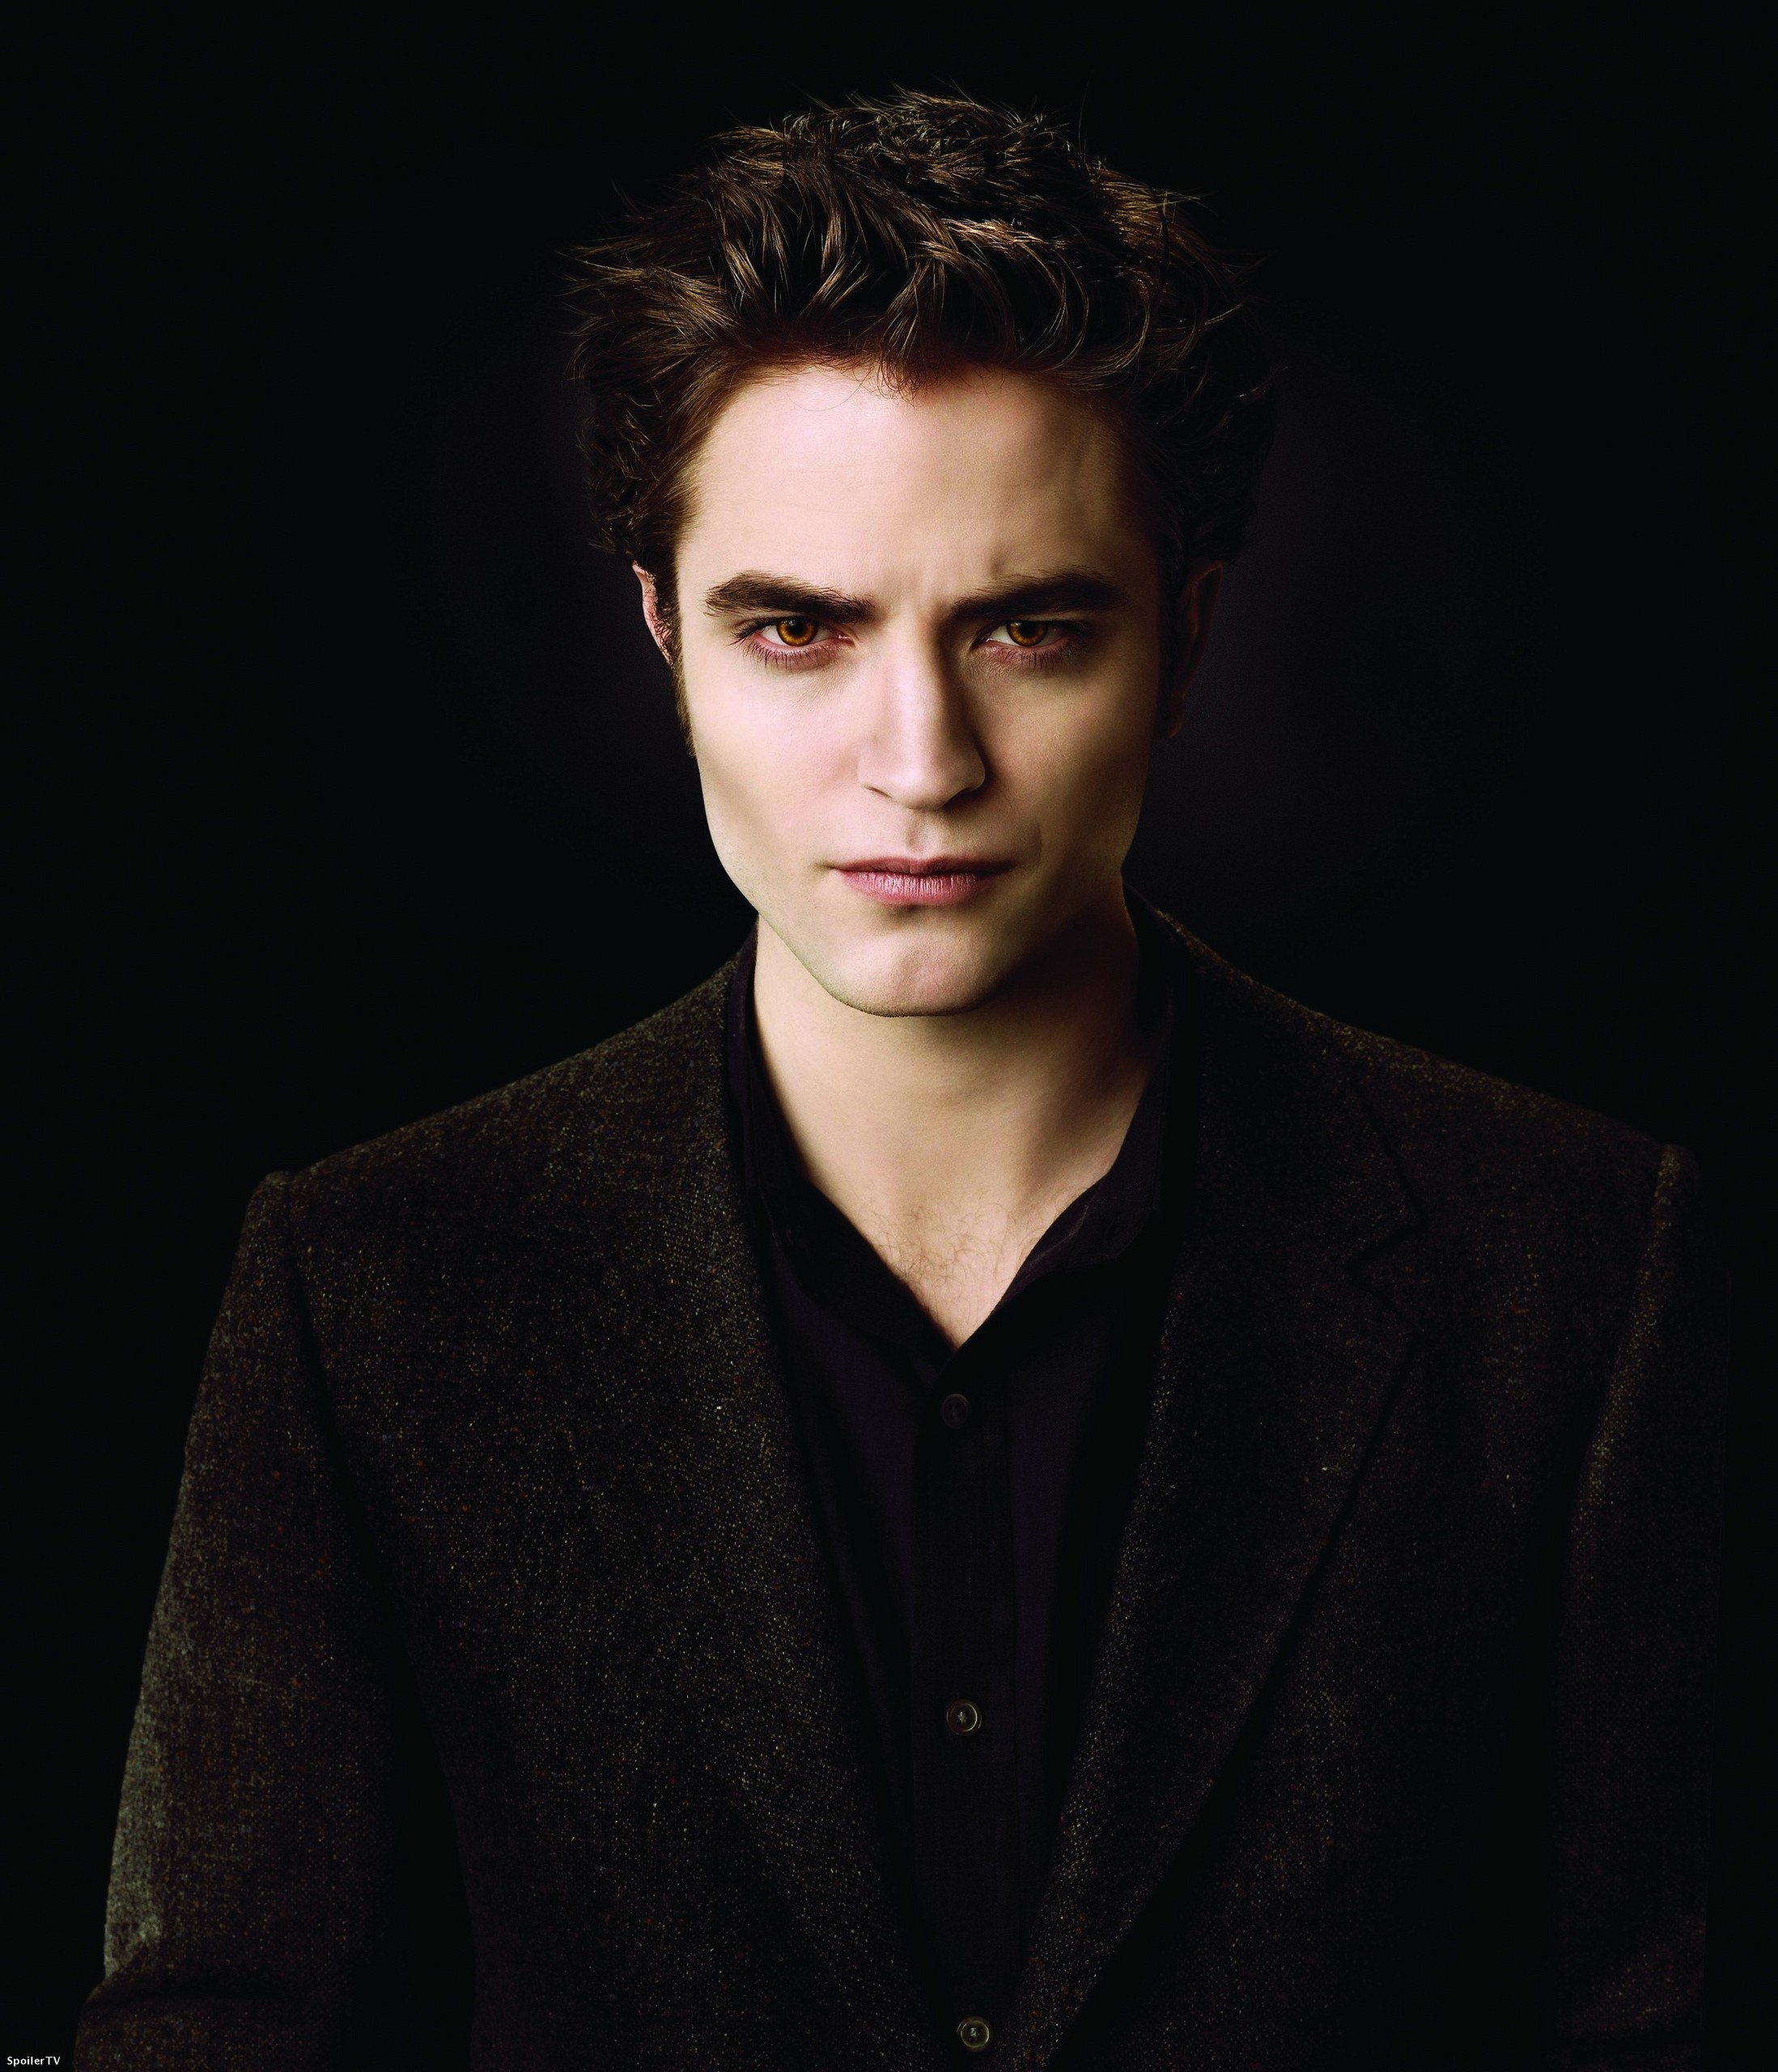 Twilight crep sculo images hq new still photoshoot Twilight edward photos